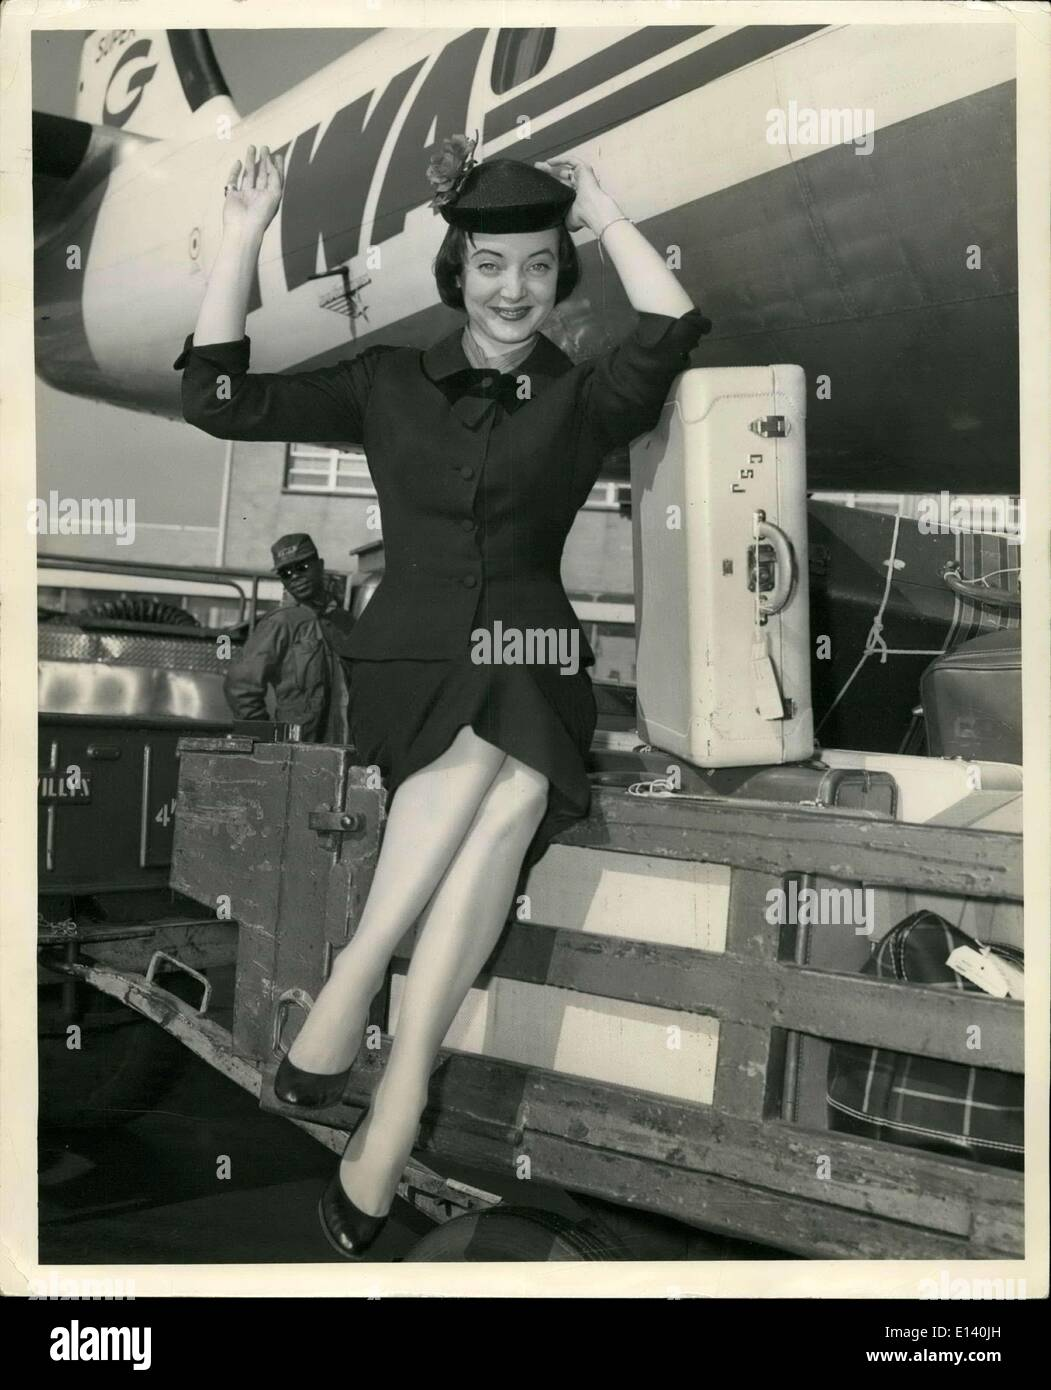 Mar. 31, 2012 - Bachelor Party girl arrives: Hollywood actress Carolyn Jones arrives in New York via TWA to publicize her new motion picture ''The Bachelor Party''. Miss Jones, the Texan beauty, will also model a 60 foot portrait of herself for the world's biggest Billiboard over the Victoria Theater. - Stock Image